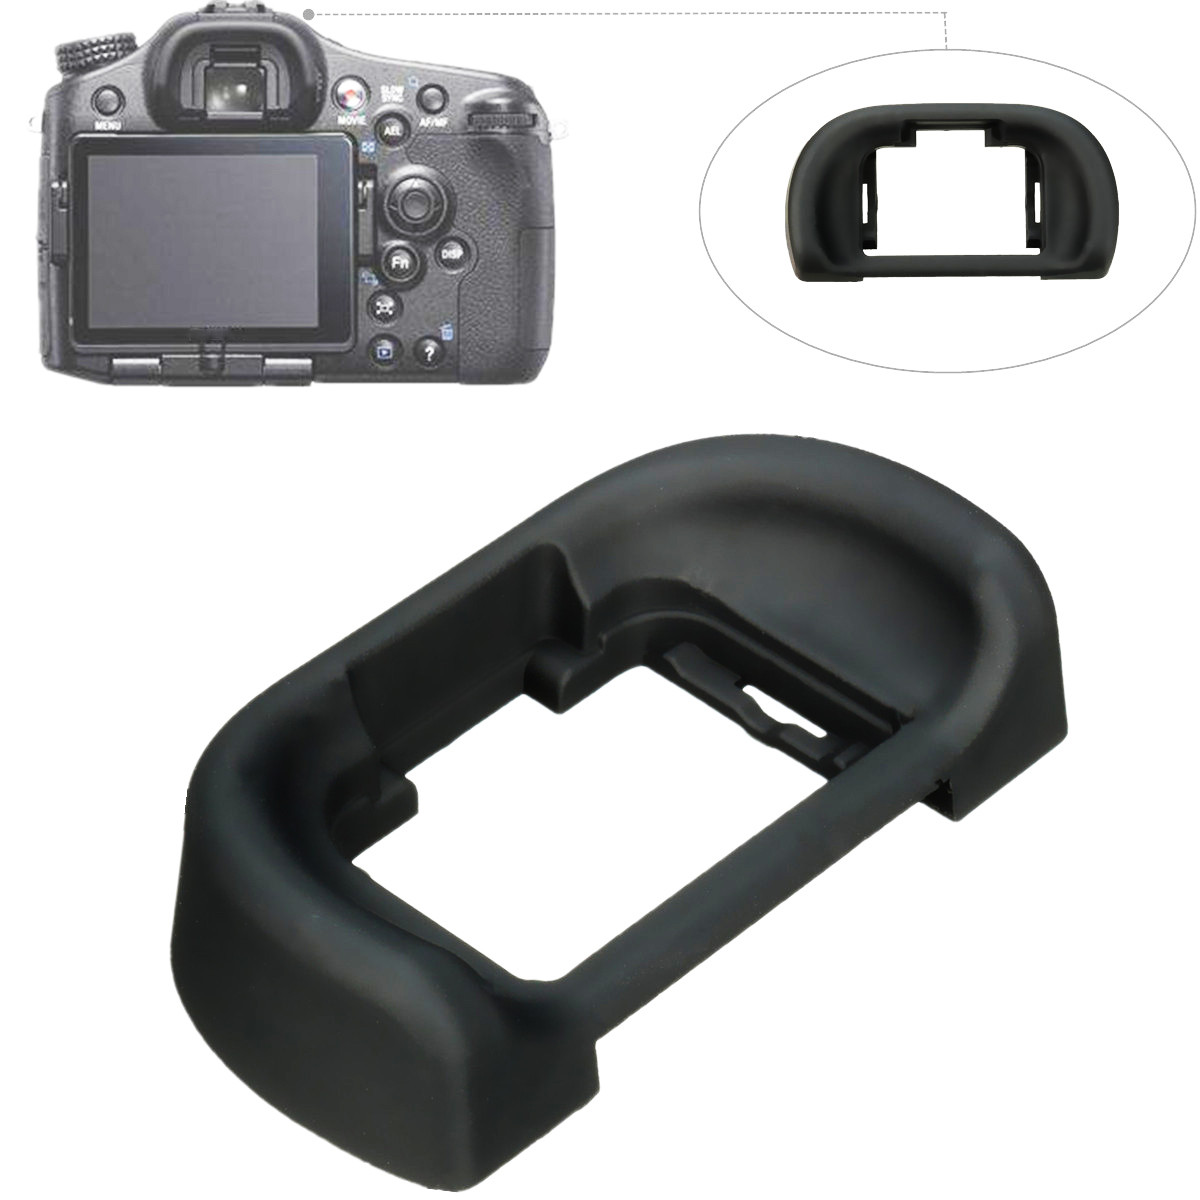 Eye Cup Viewfinder Eyepiece FDA-EP11 For Sony Alpha A77 A58 A65 SLT-A7 A7R A57